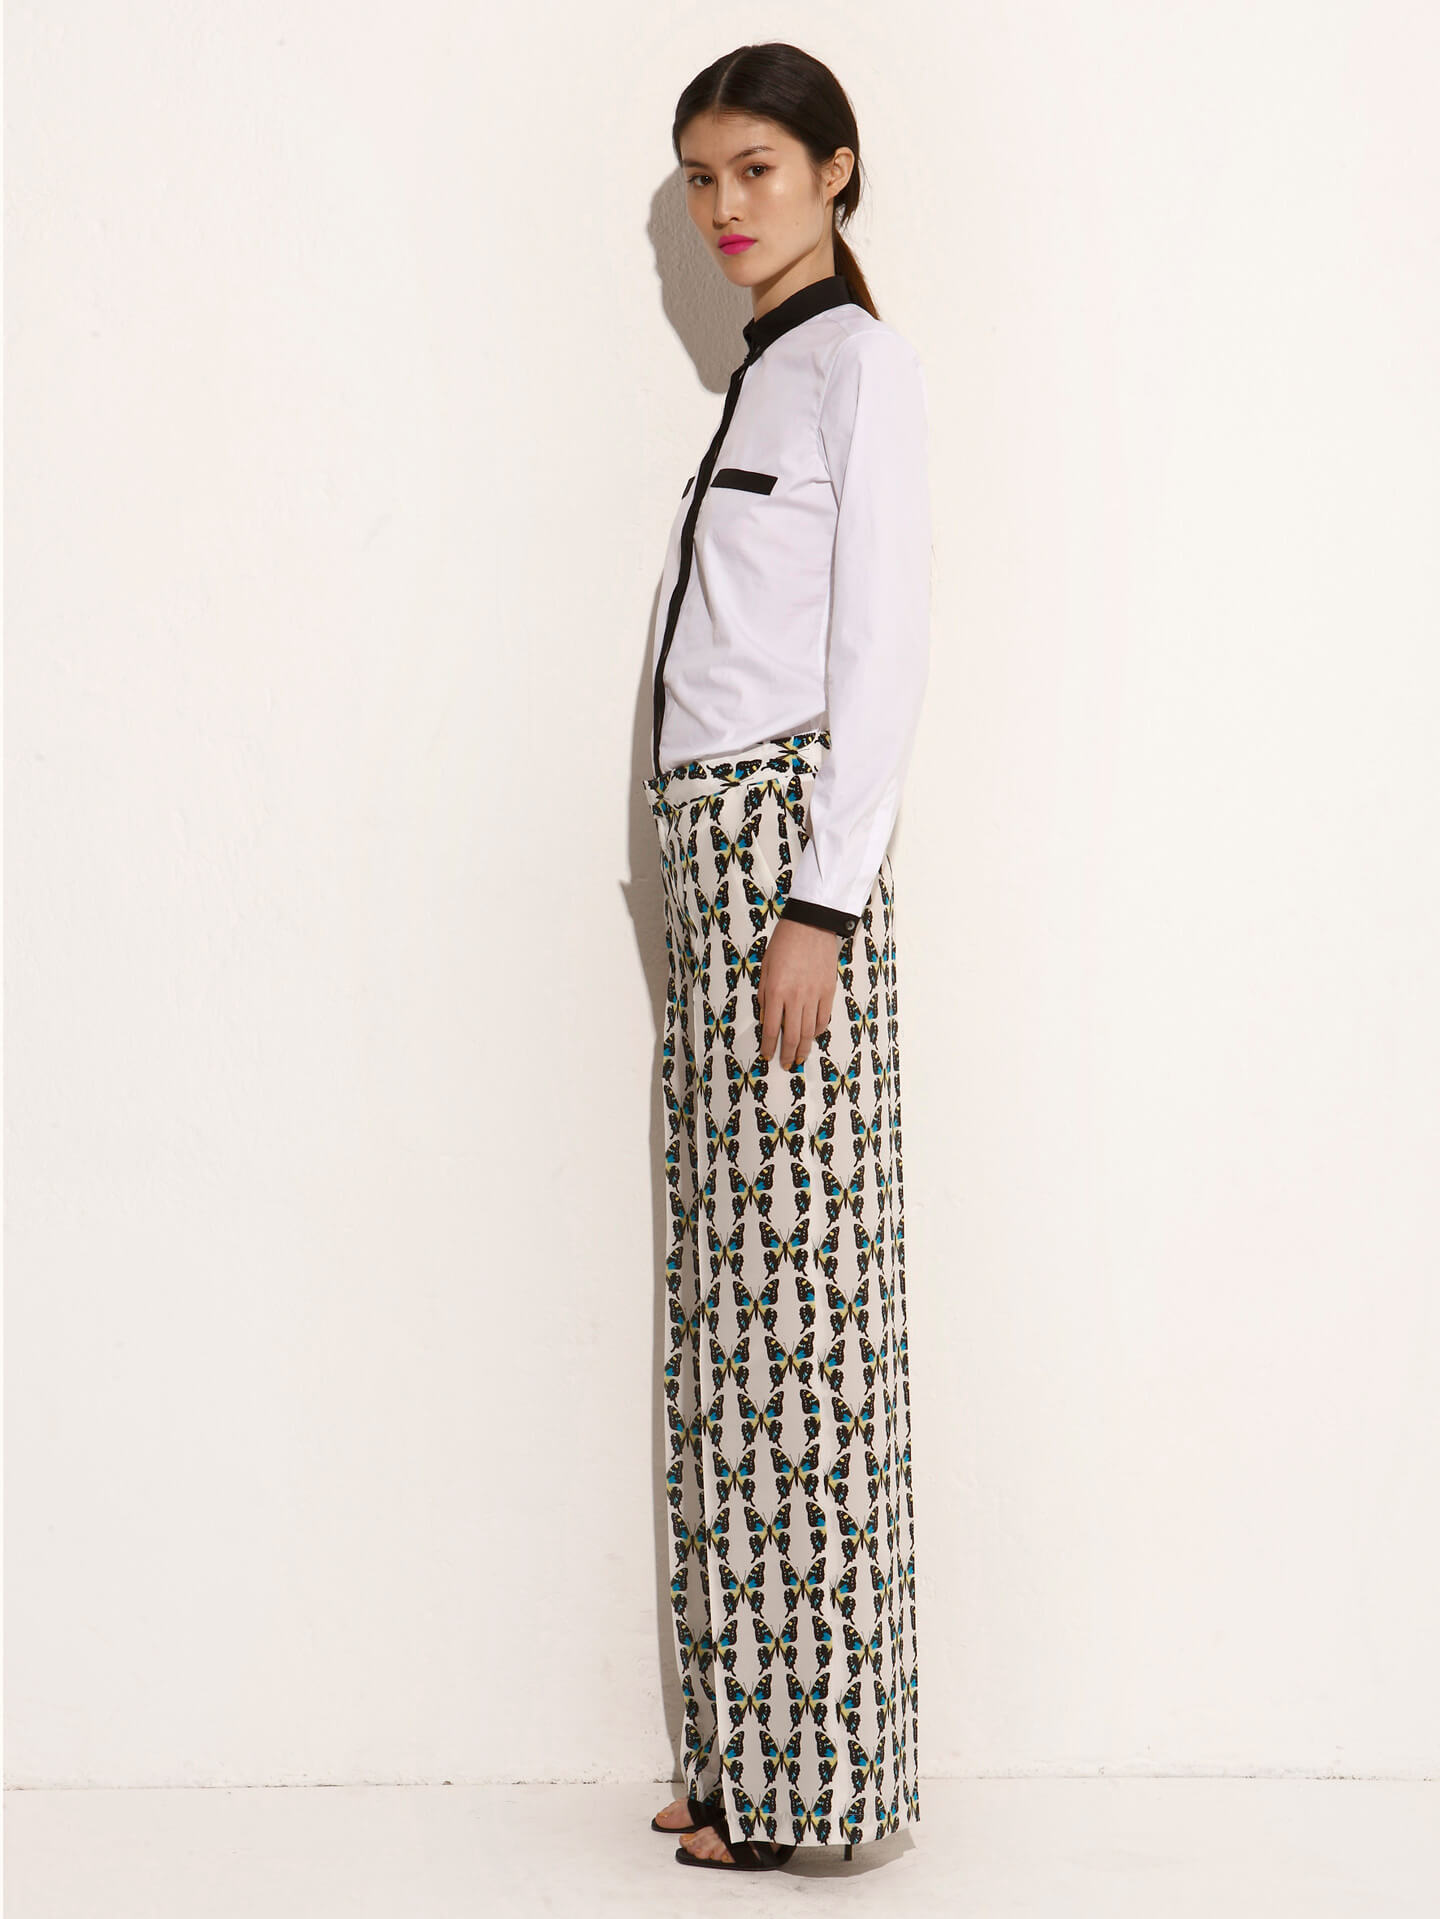 MSGM - 2011 - Woman Spring Summer